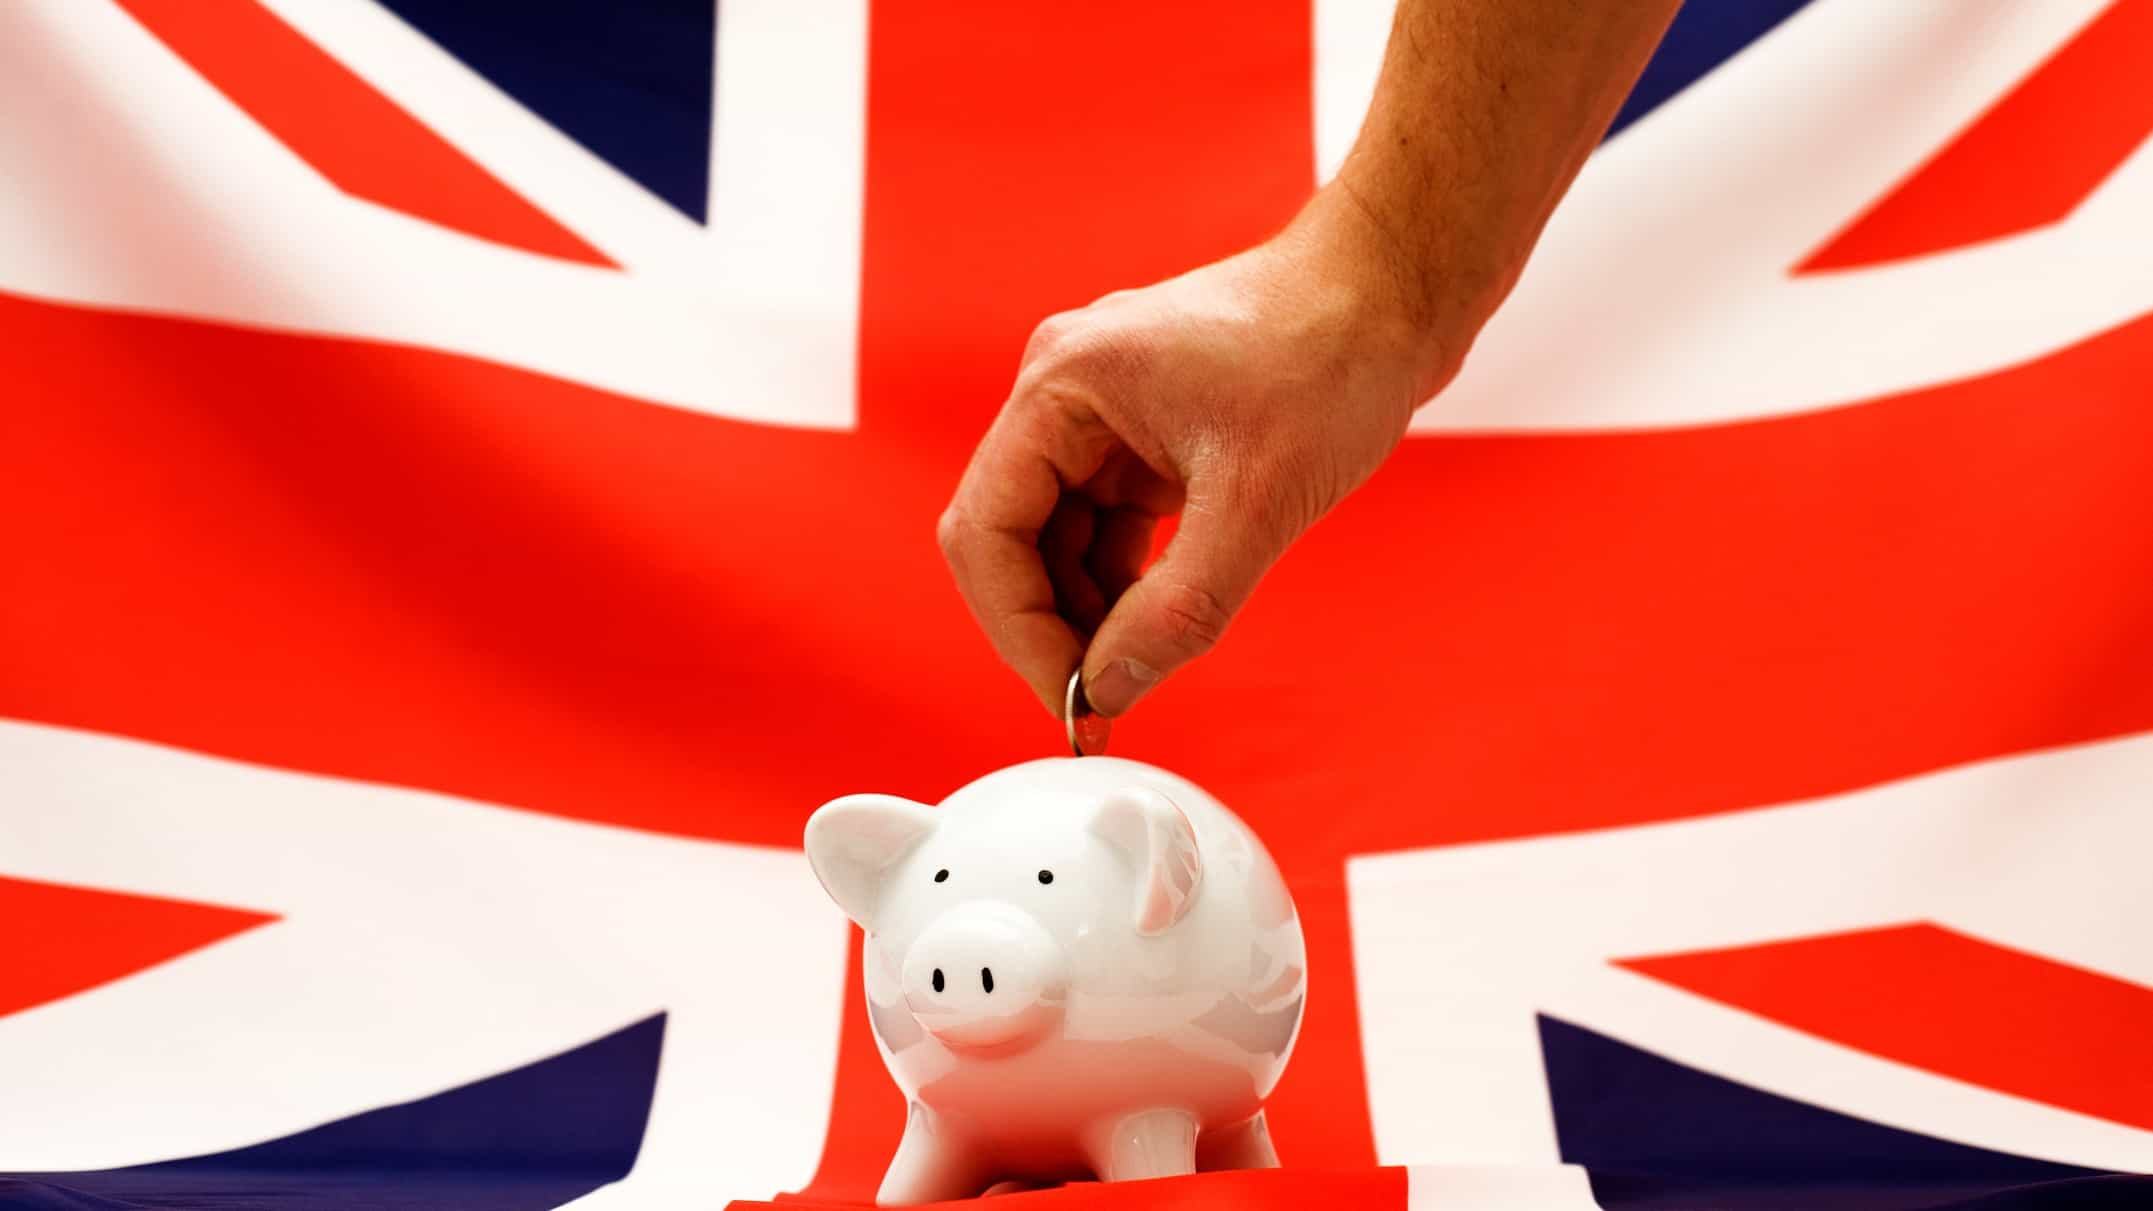 Investing in ftse 100 represented by investor placing money in piggy bank in front of English flag